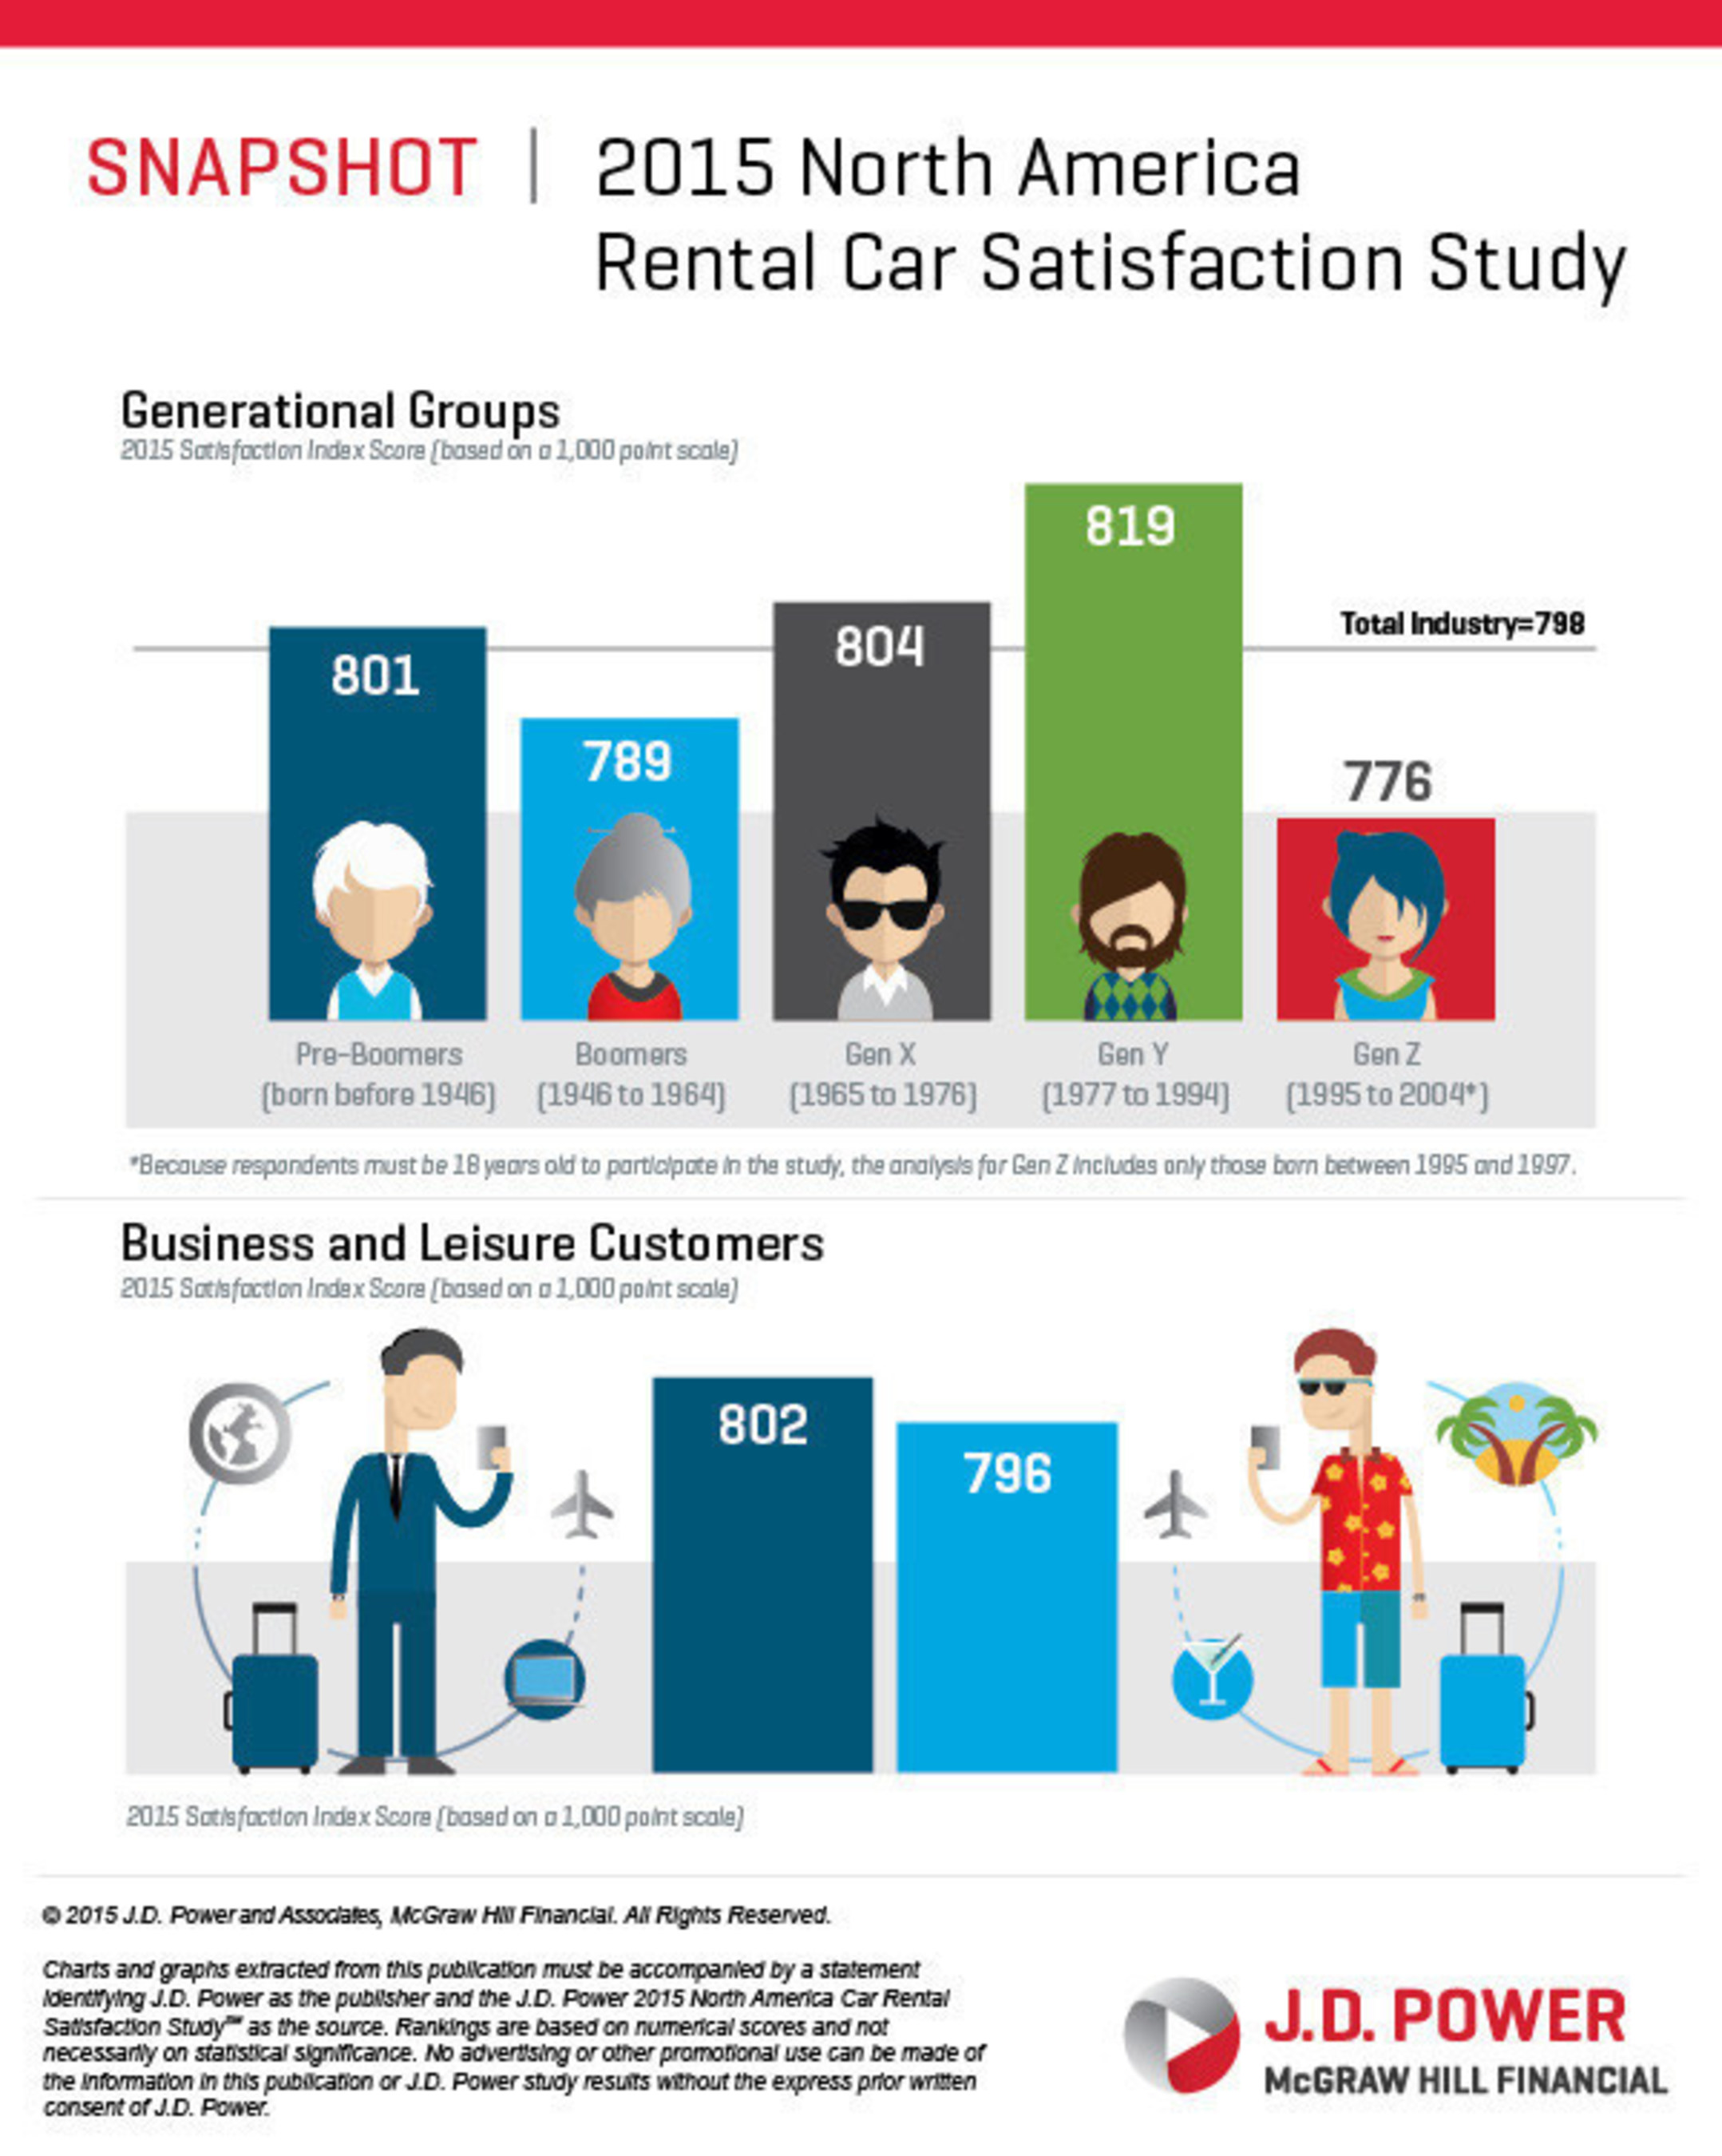 Who has the best rental car loyalty program